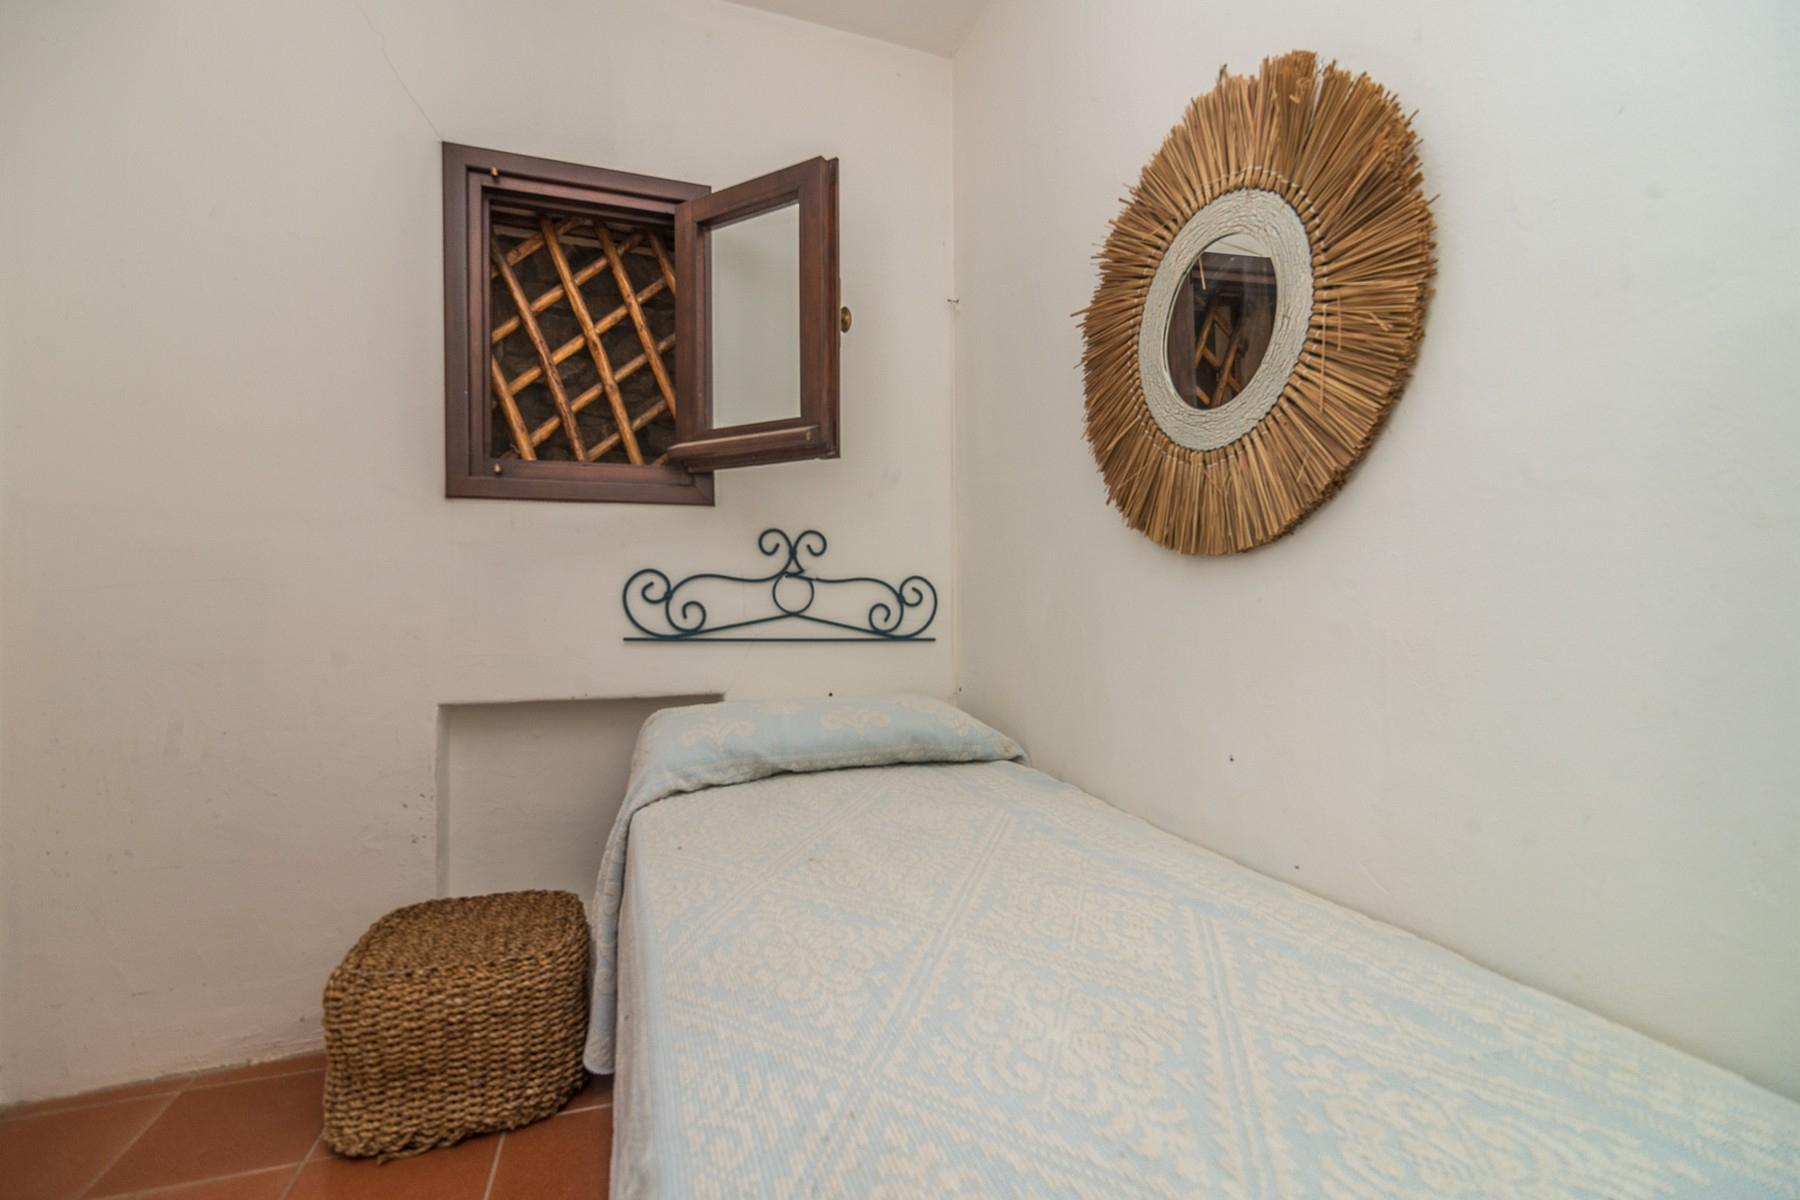 Porto Cervo Cala Granu Delightful Apartment a few steps from the beach - 17